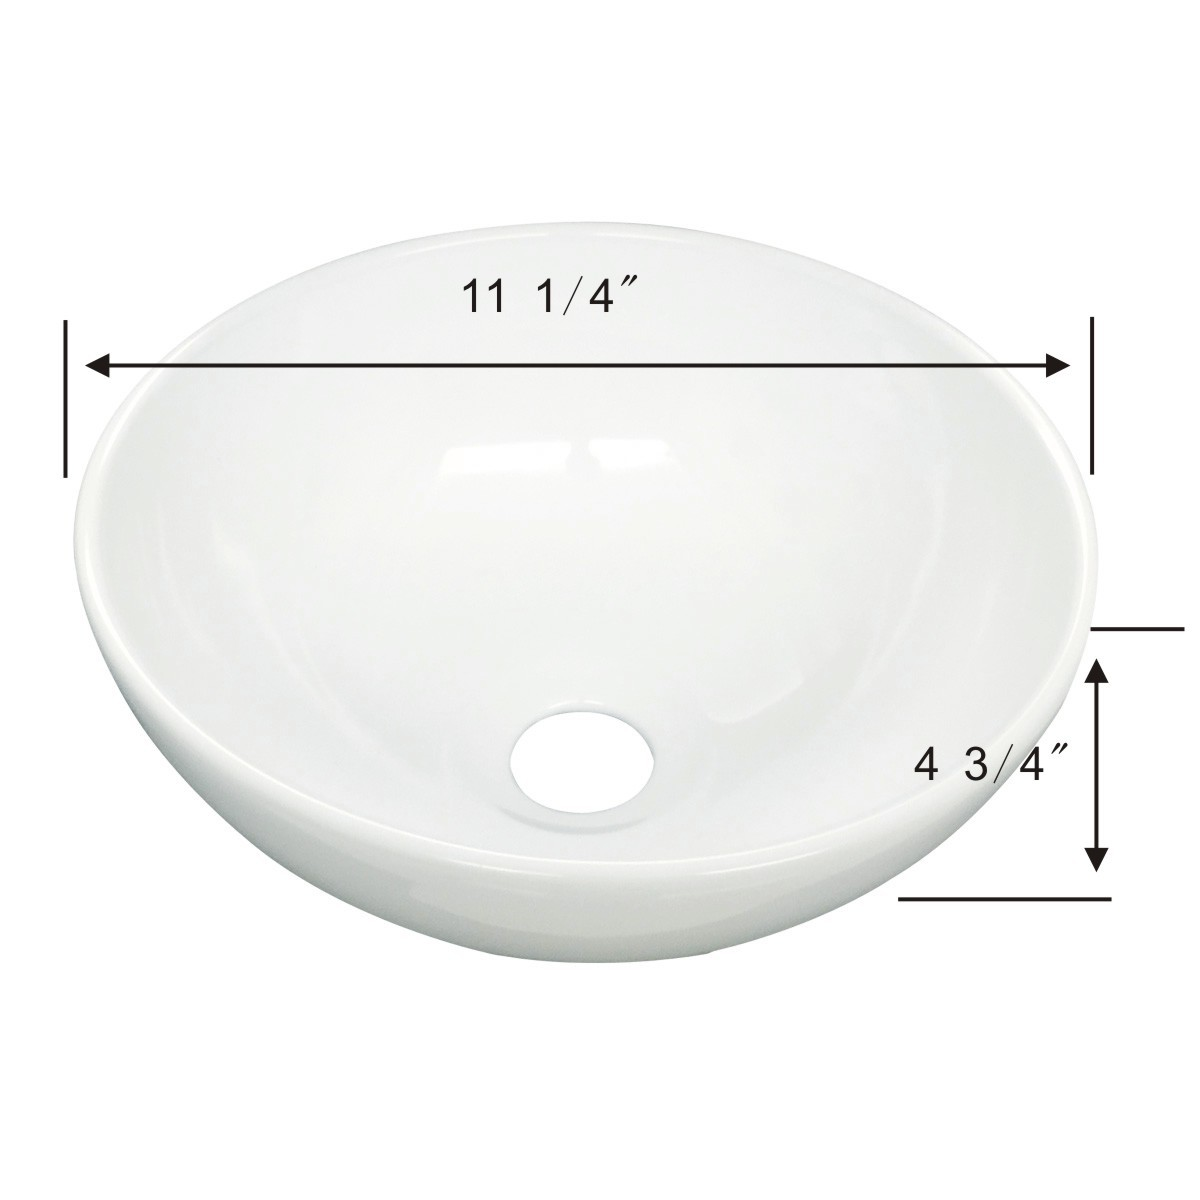 19 round bathroom sink white small vessel sink mini above counter bathroom 15262